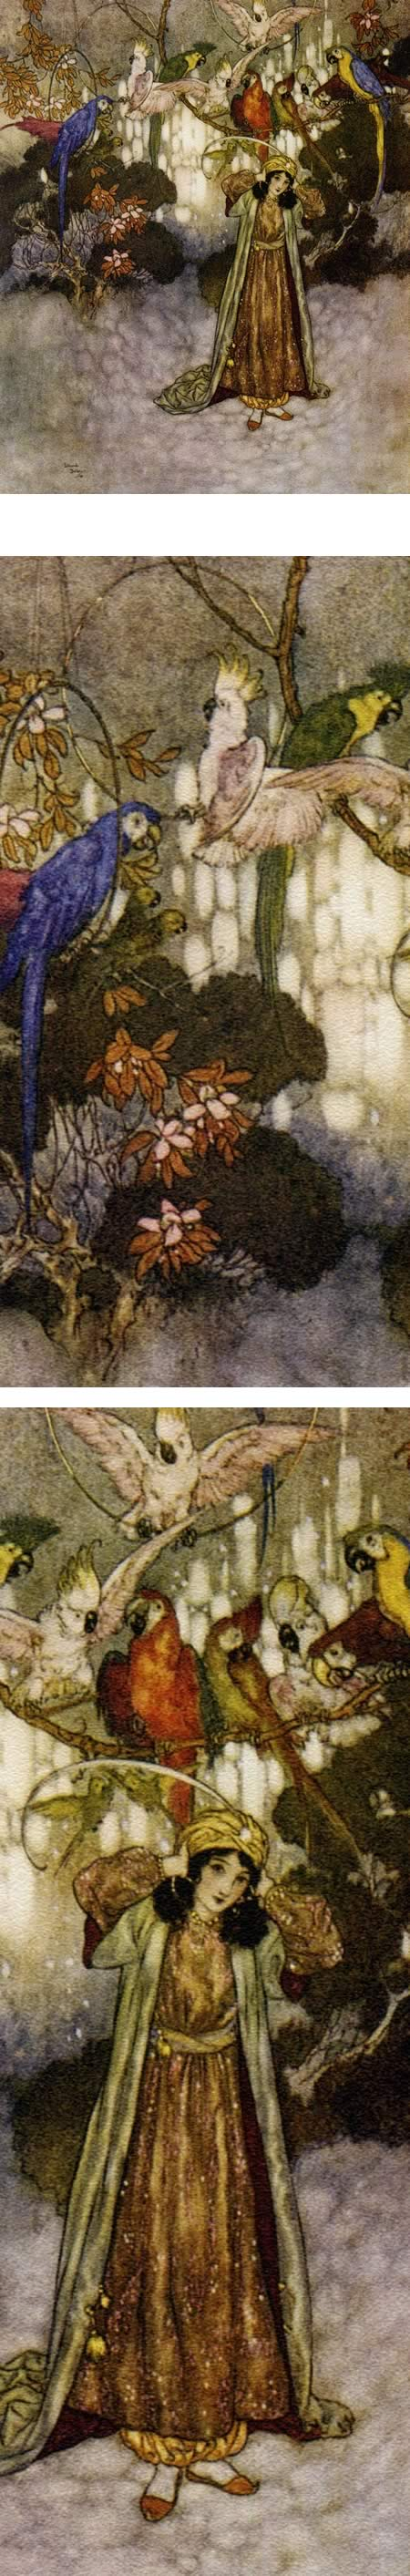 A Room Full of Parrots, Edmund Dulac, from Beauty and the Beast